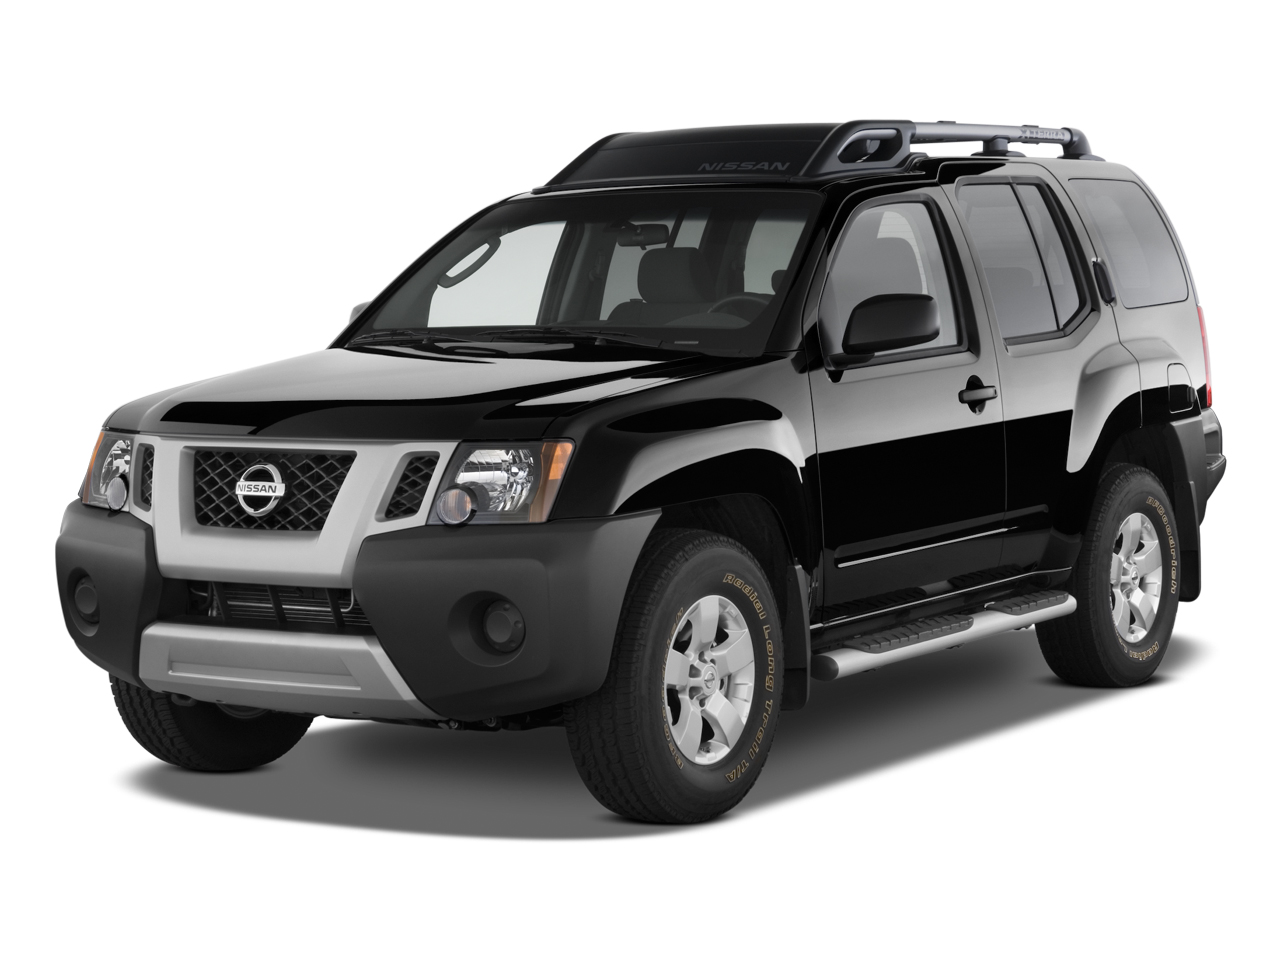 Nissan Xterra 2001 photo - 3